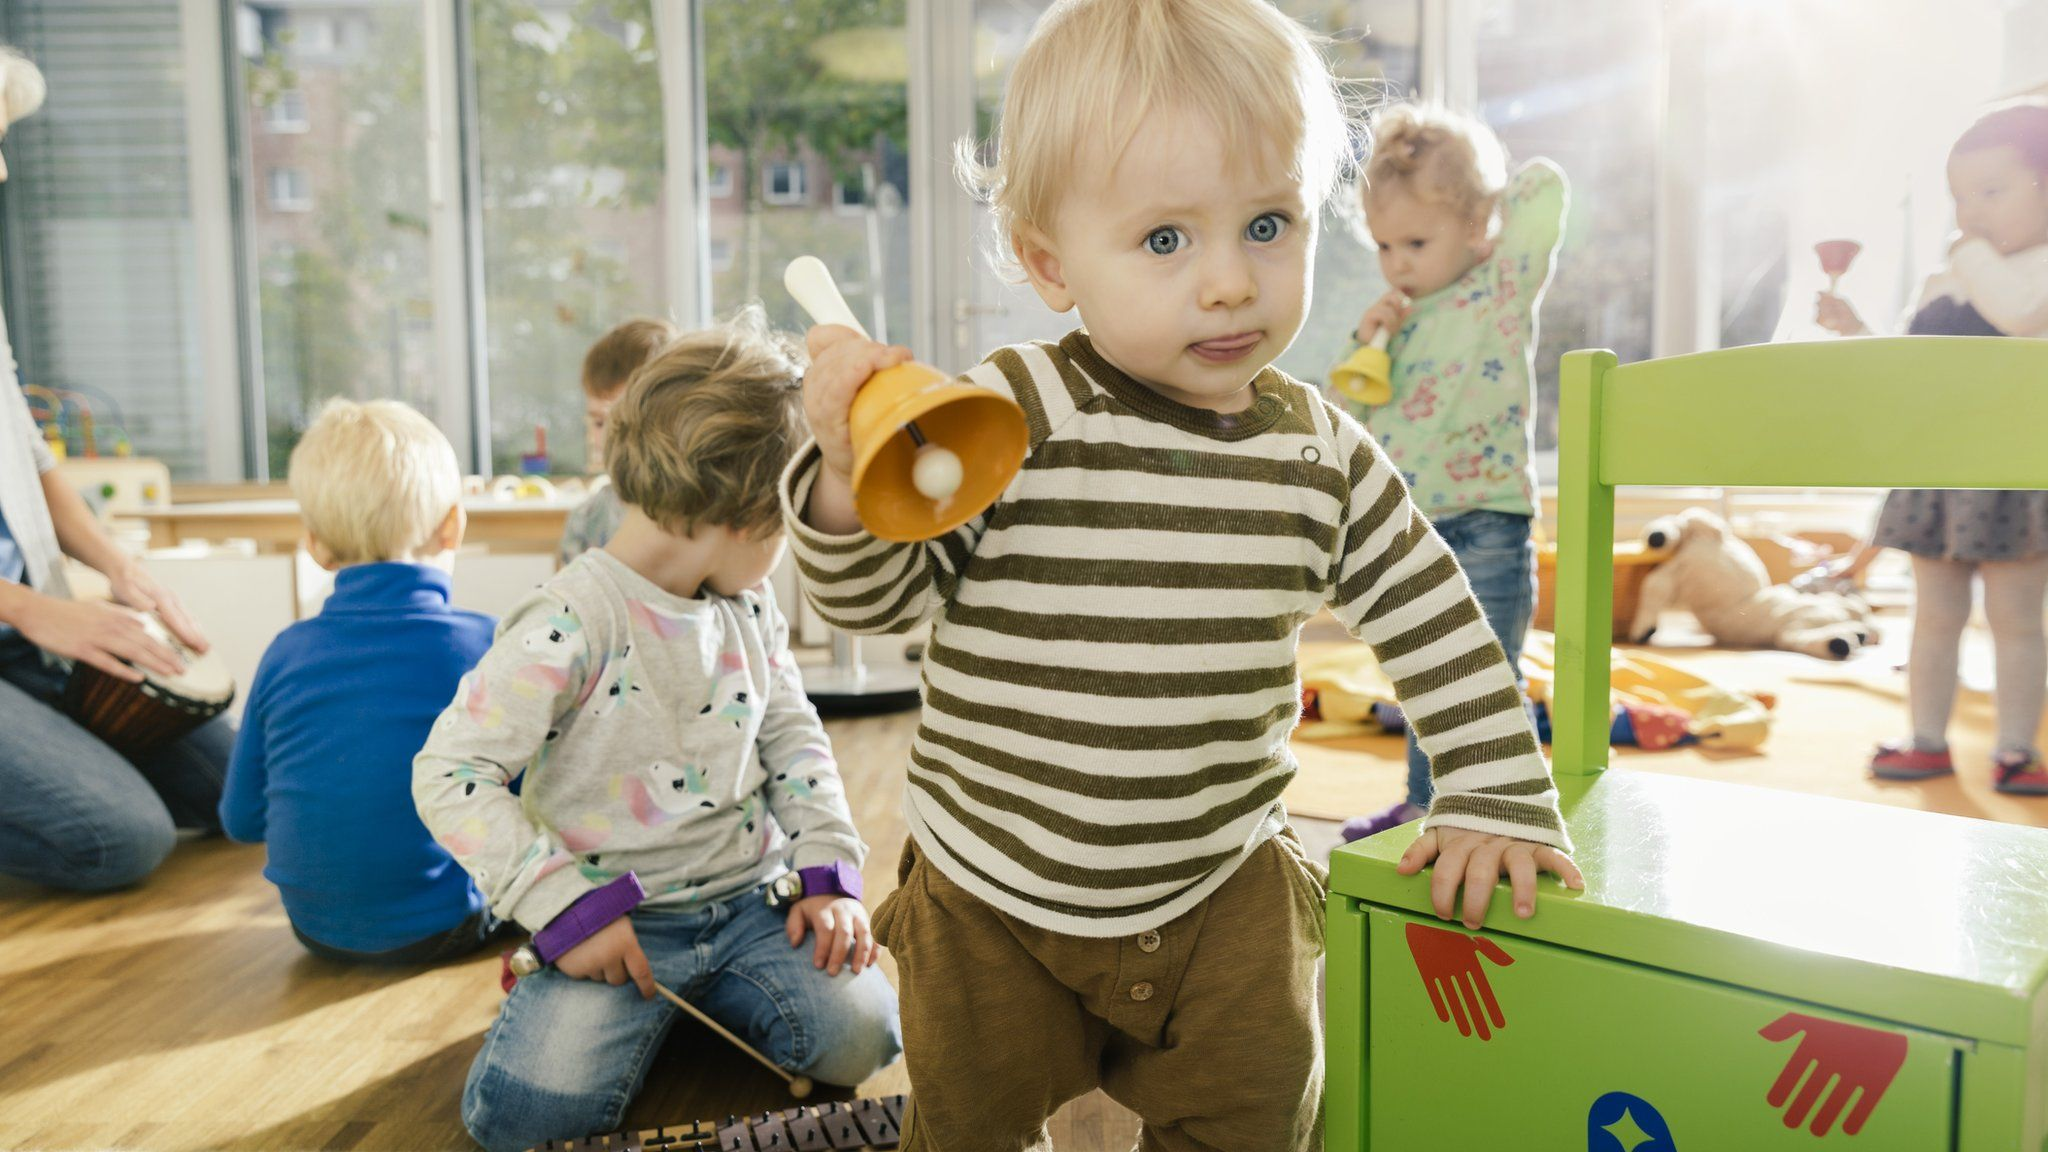 Young boy at a playgroup